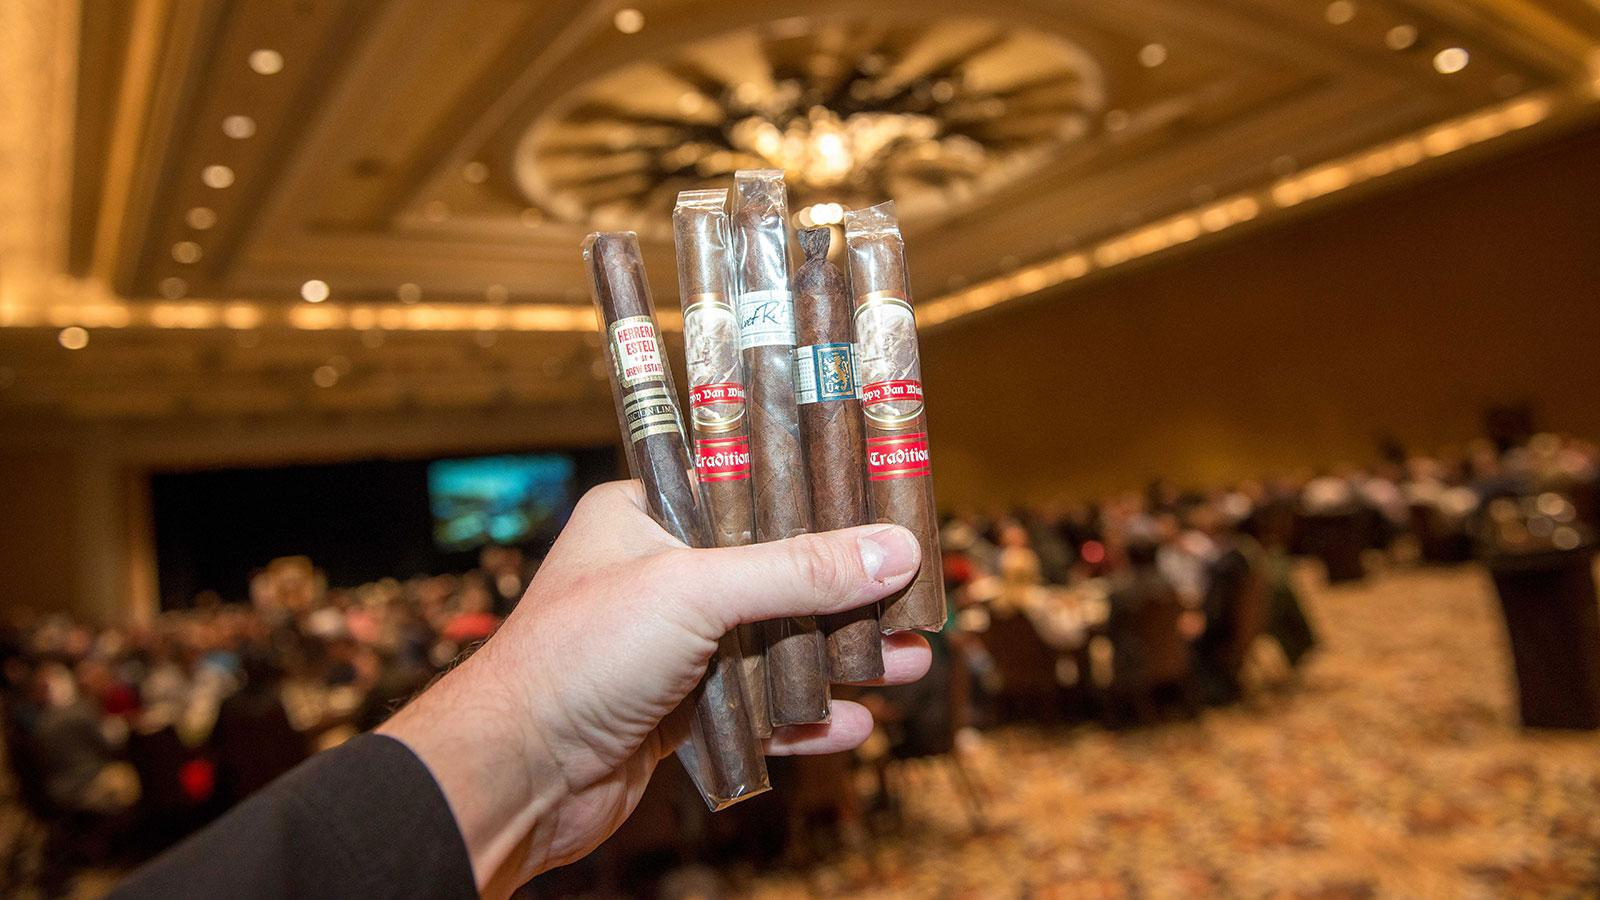 Rare cigars were handed out at lunch, including, from left, a Herrera Esteli Lancero Edición Limitada, a Pappy Van Winkle Tradition Lonsdale, Liga Privada Único Serie Velvet Rat, Liga Privada Único Serie Dirty Rat and a Pappy Van Winkle Tradition Corona Extra.